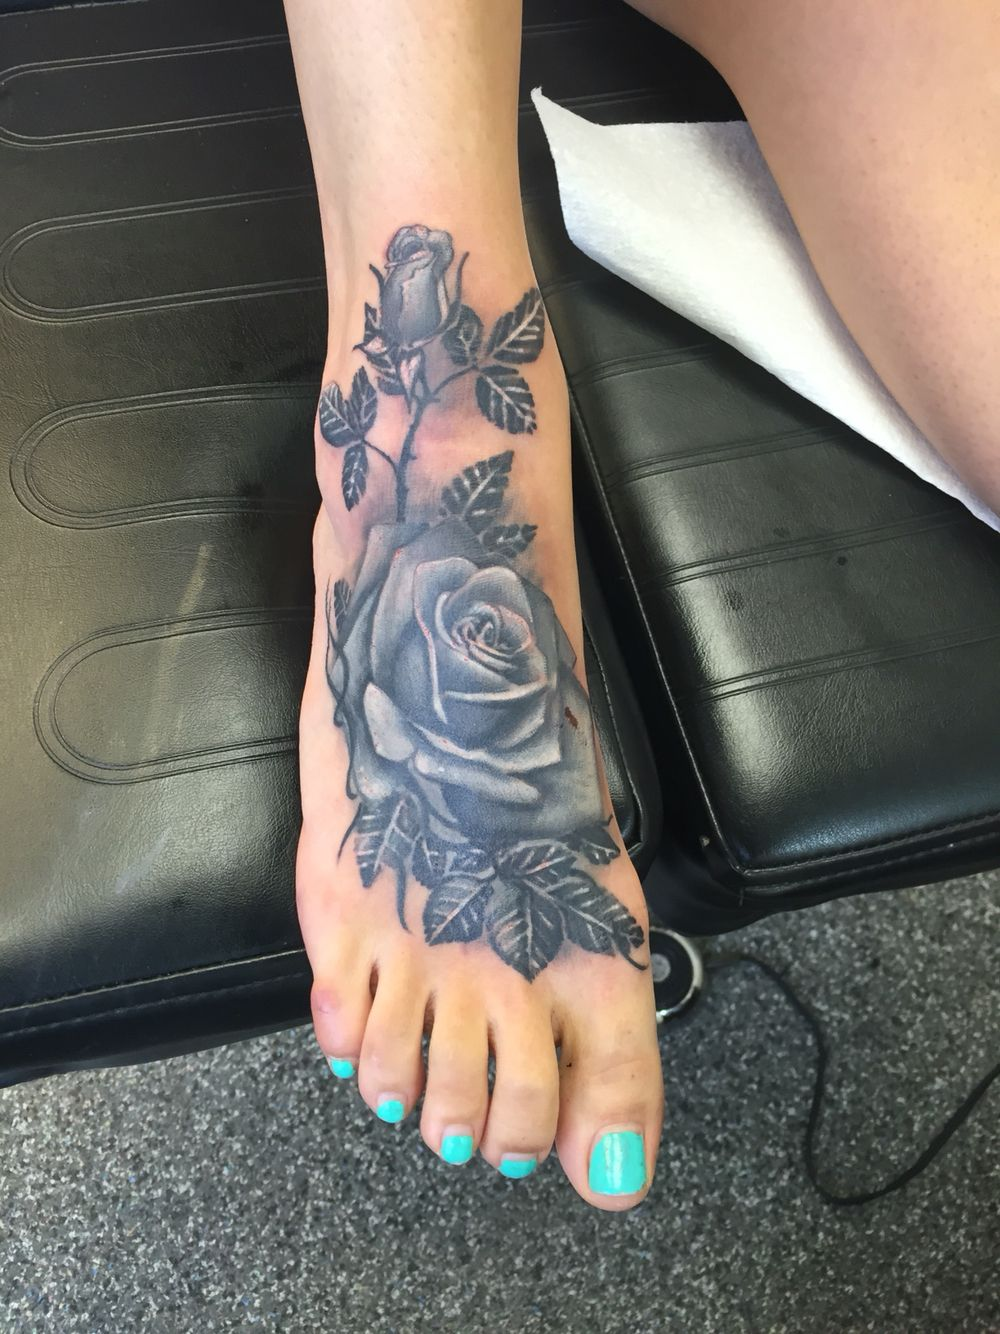 Big tattoo cover up ideas my black and grey rose cover up foot tattoo  tatuajes  pinterest